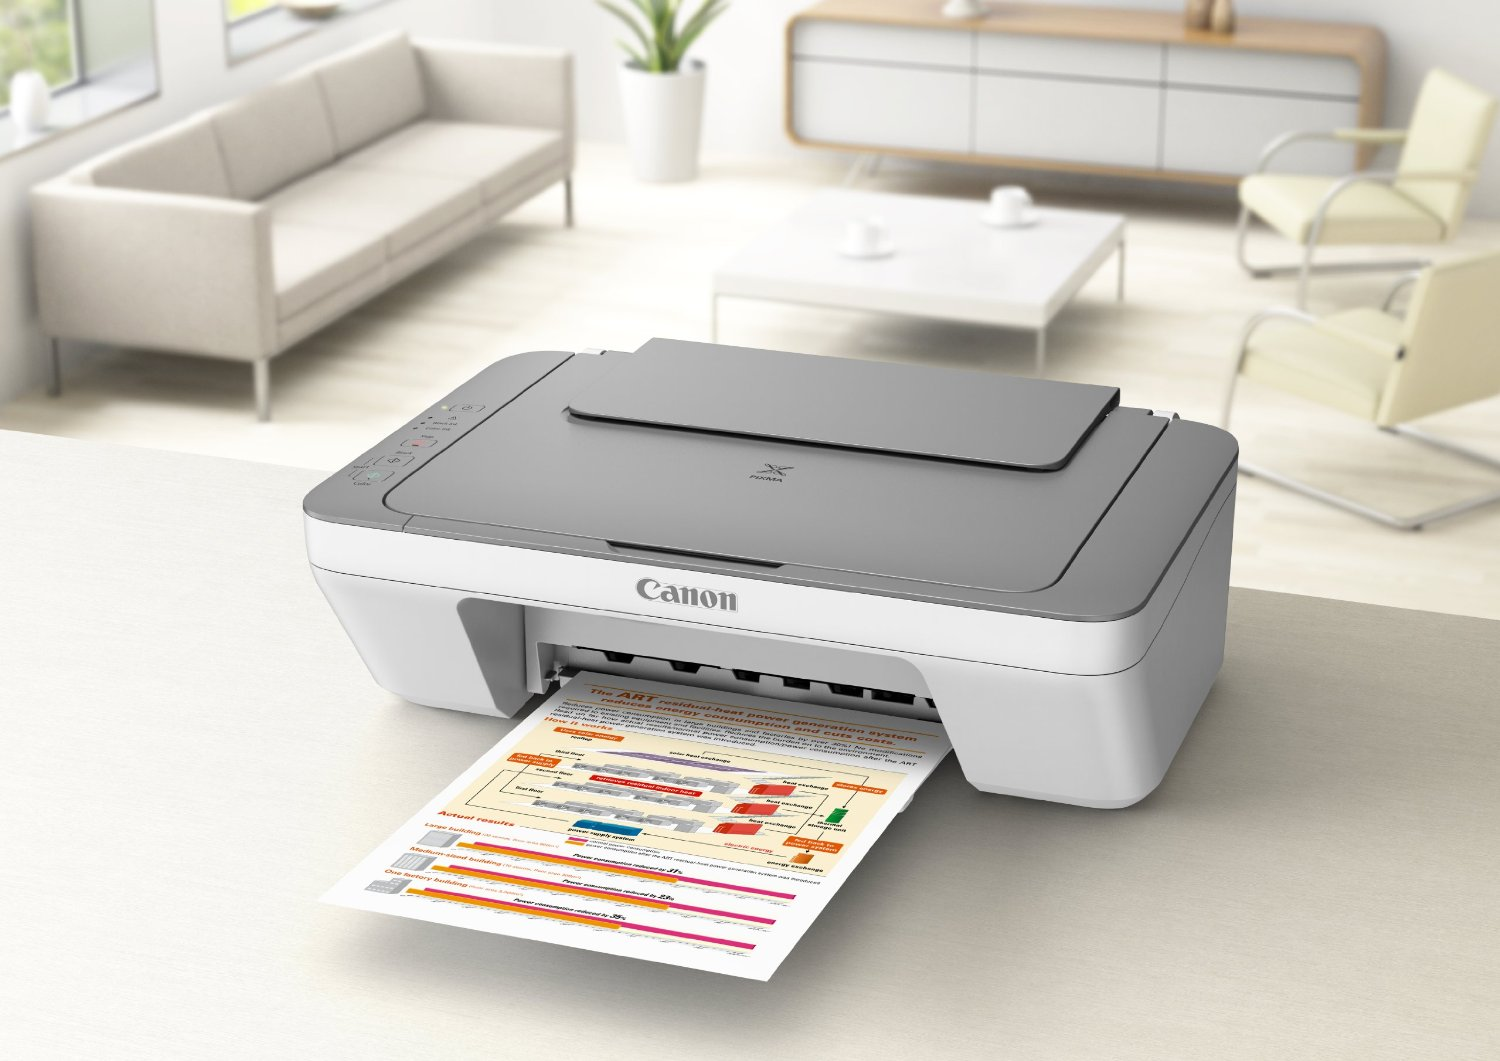 PIXMA Printer Software and Apps - Canon UK Artesia band images woman